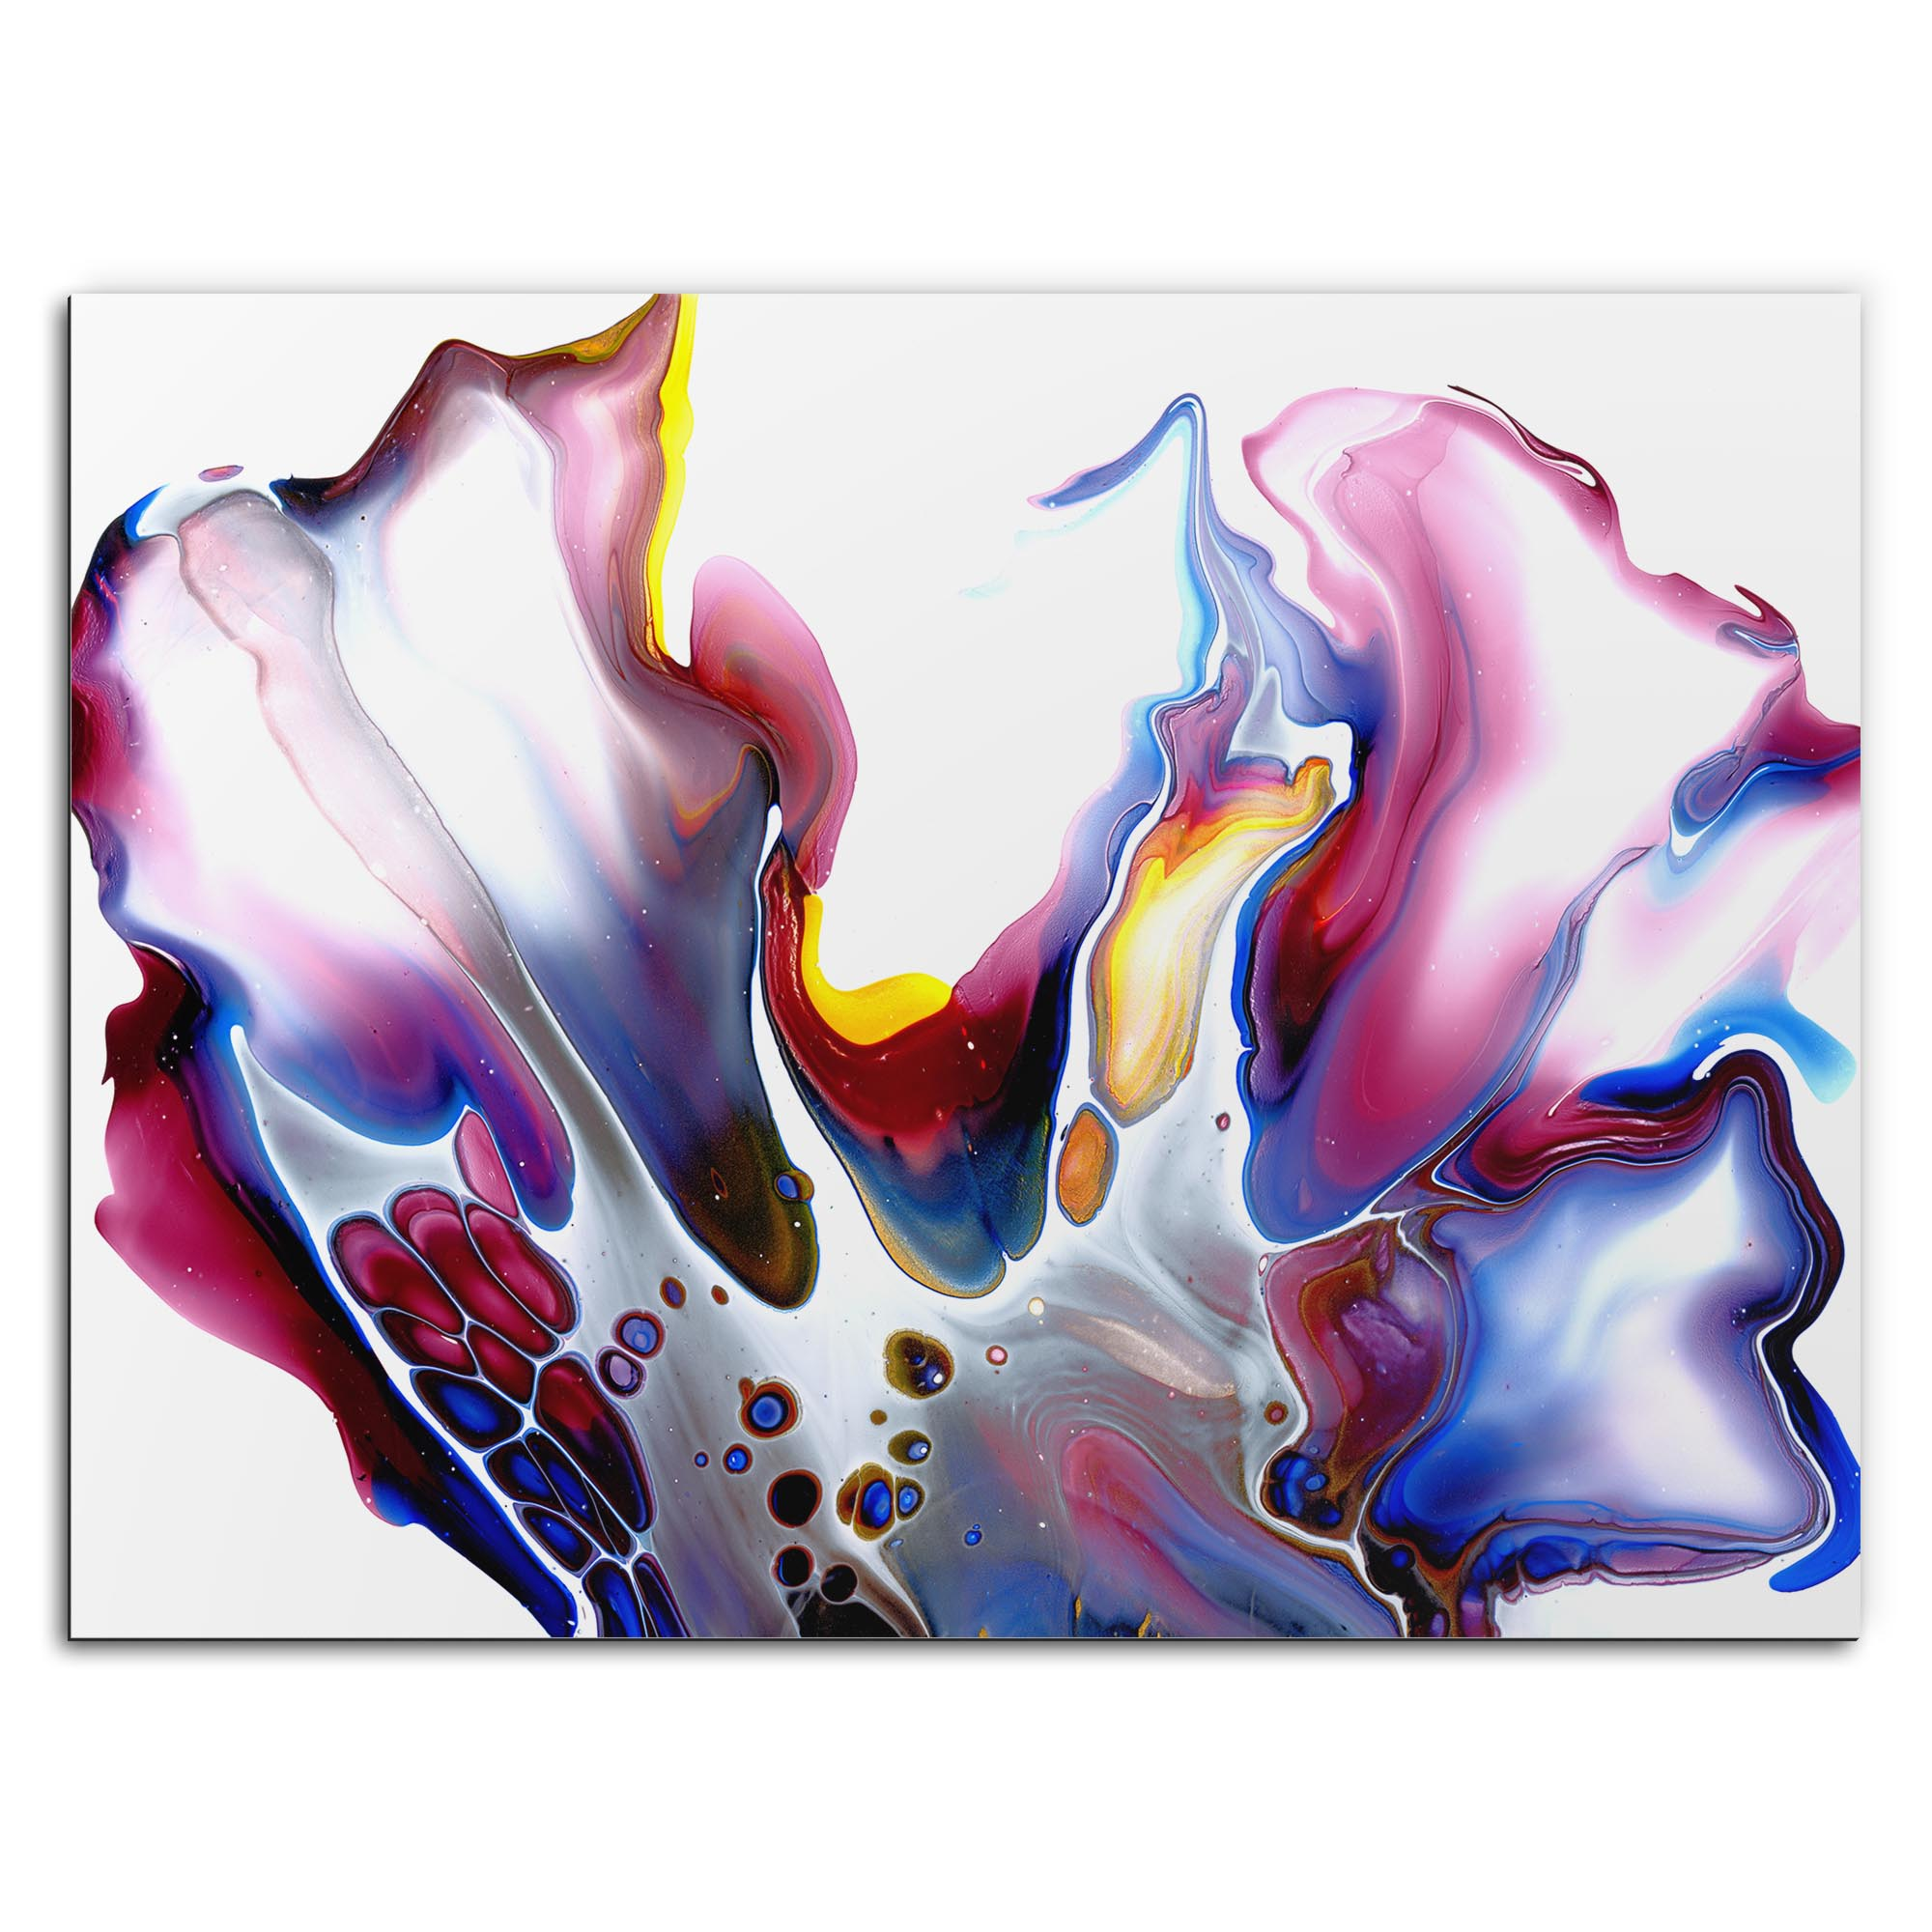 Elana Reiter 'Slick' 32in x 24in Contemporary Style Abstract Wall Art